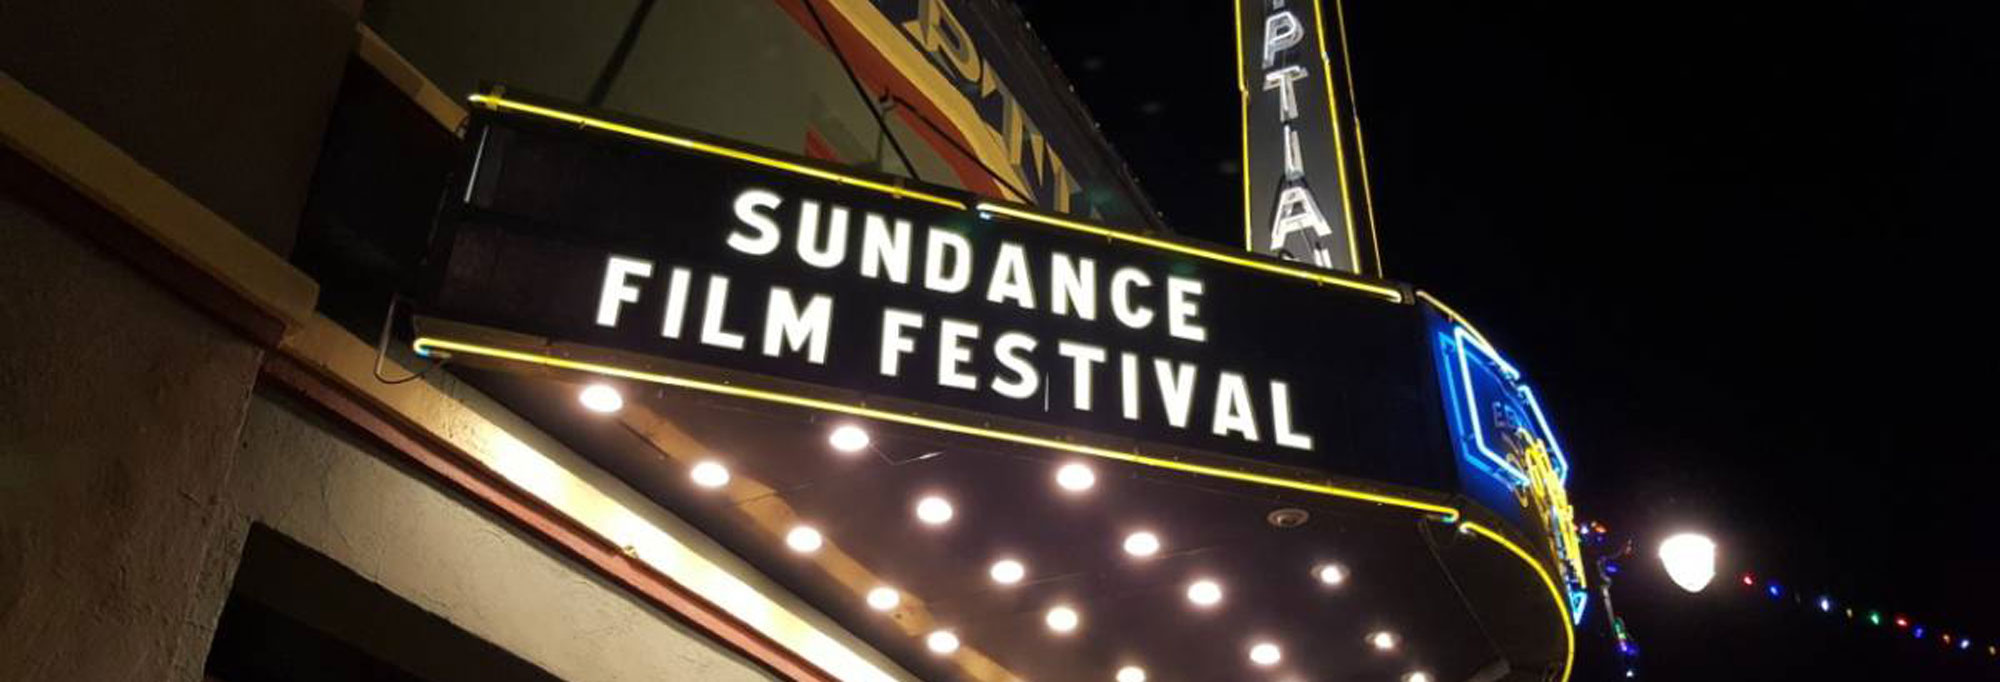 sundance_marquee_large